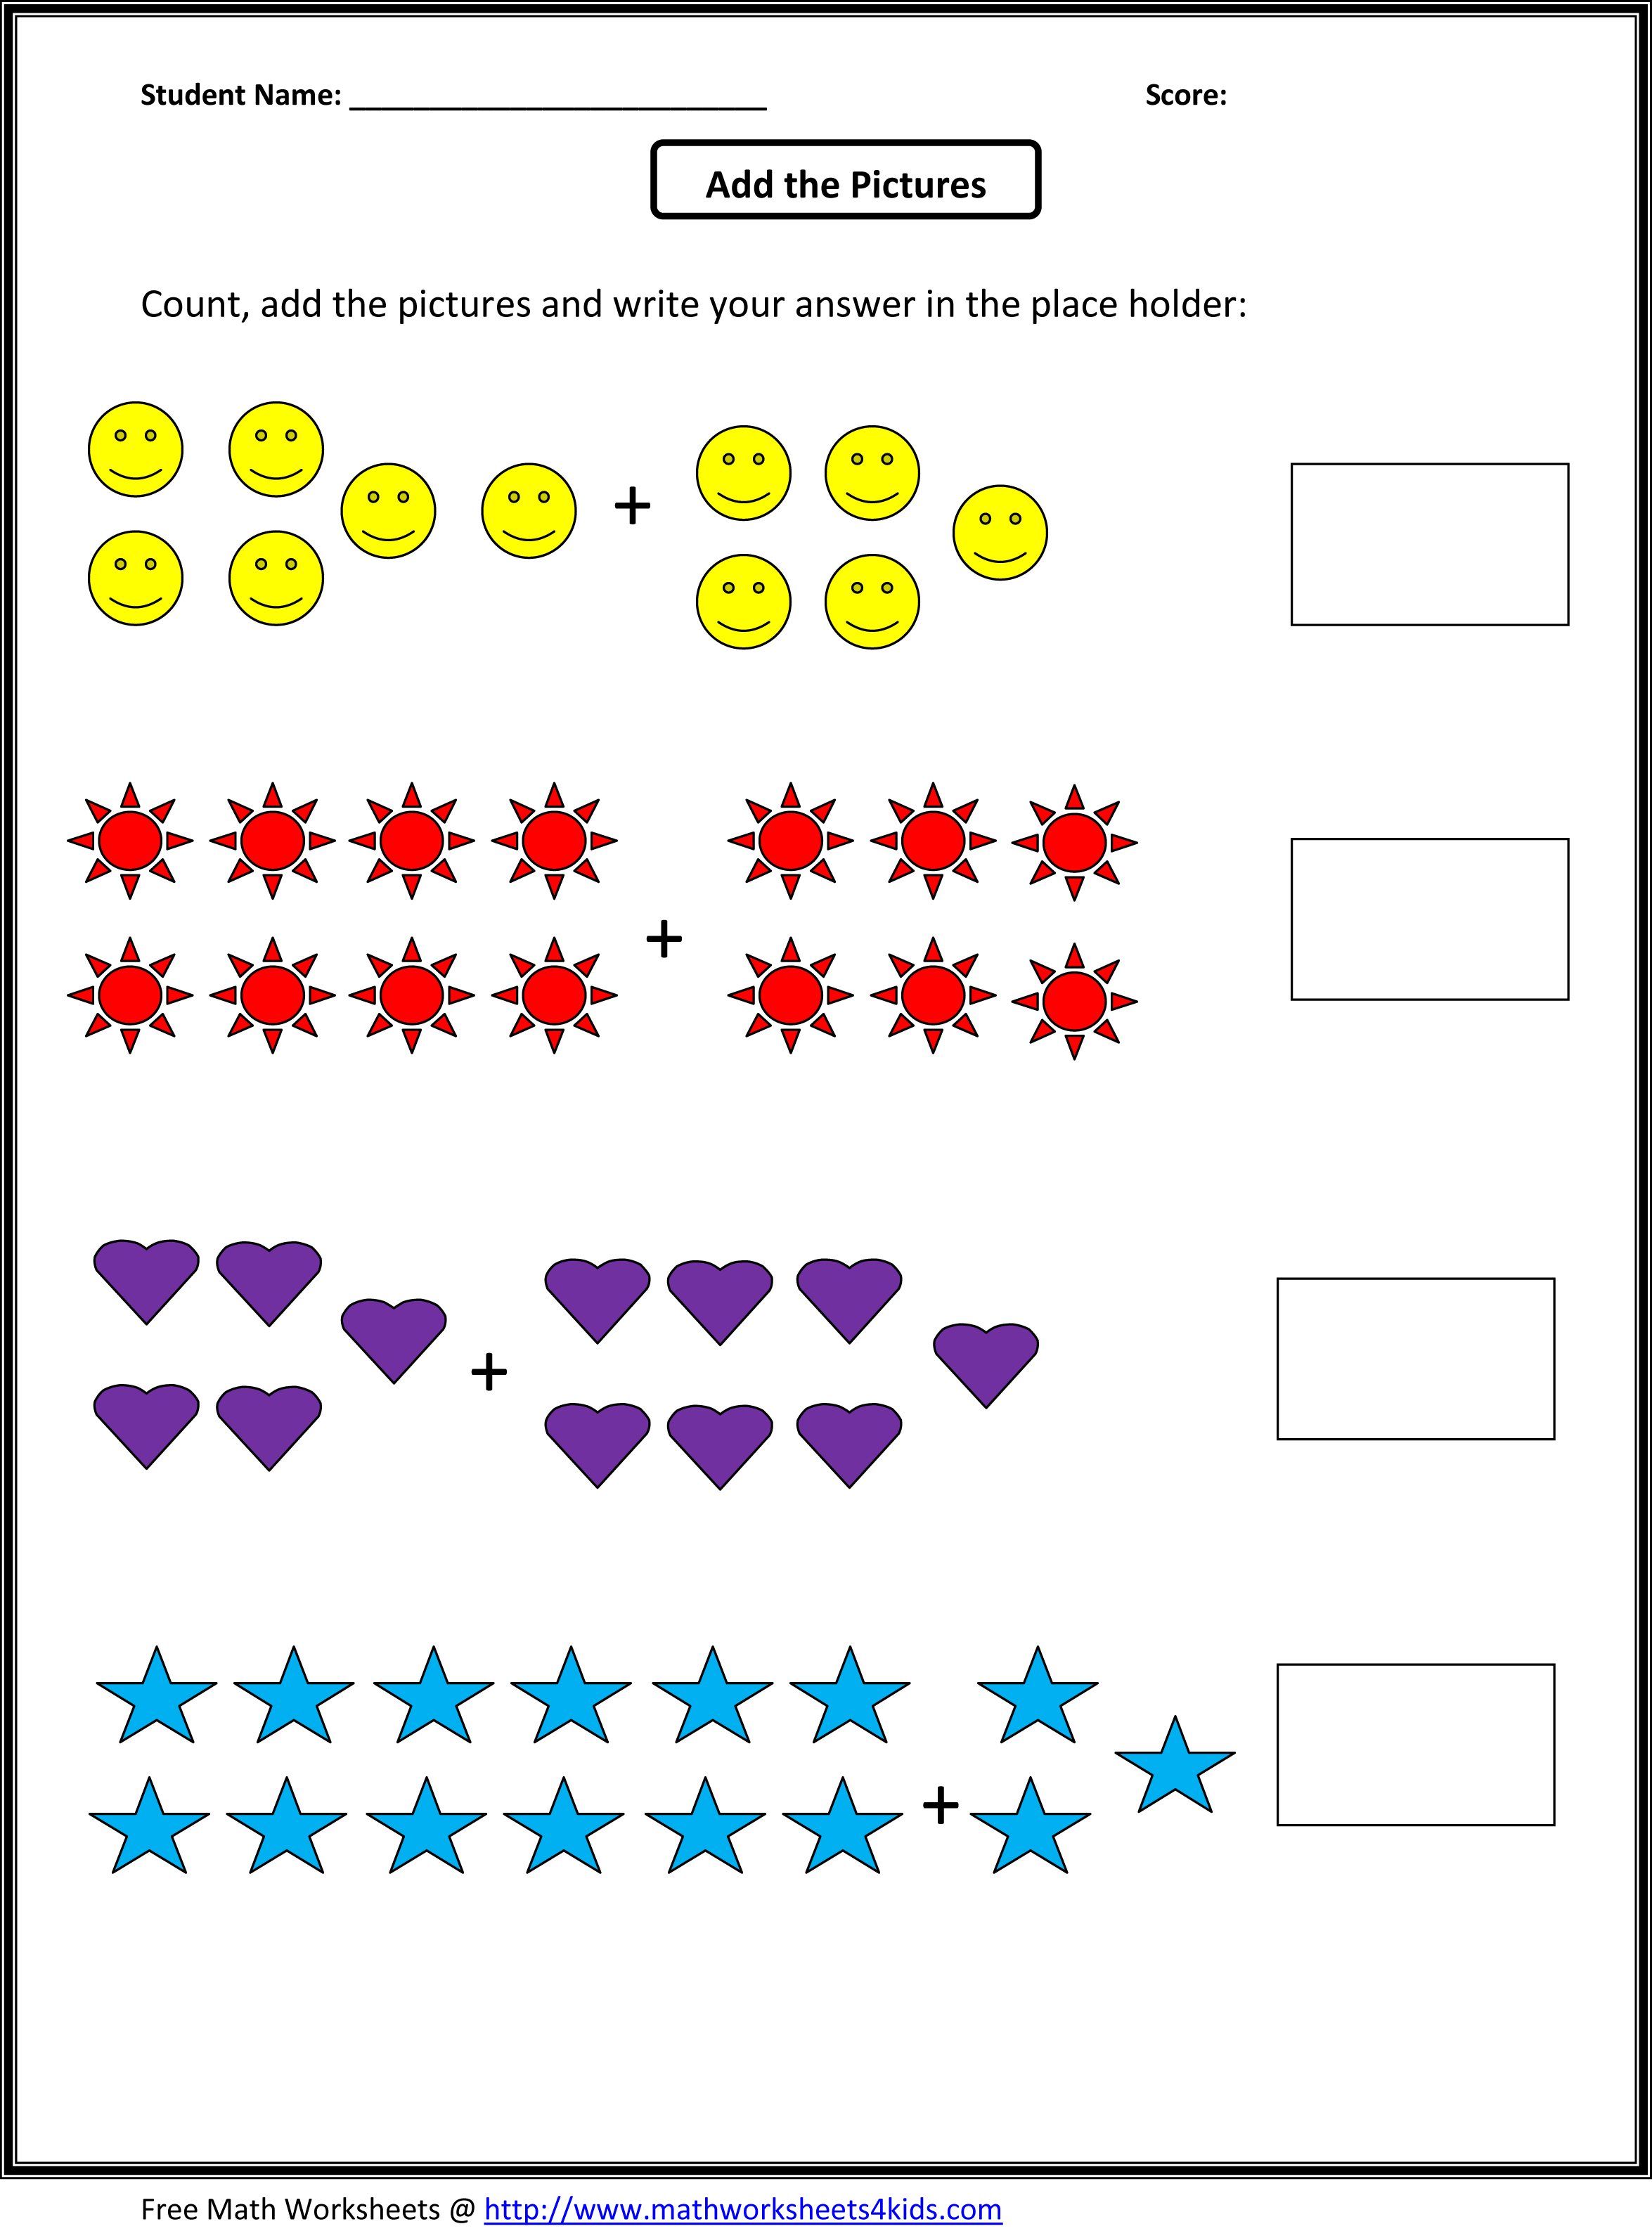 Proatmealus  Gorgeous Grade  Maths Worksheet  Reocurent With Heavenly Math Worksheets For St Grade Free  Reocurent With Alluring Excel Accounting Worksheet Also Compound Words Worksheet For Grade  In Addition Mental Maths Worksheets Year  And Drawing Reflections Worksheet As Well As Esl Fun Worksheets Additionally Brain Puzzles Worksheets From Reocurentcom With Proatmealus  Heavenly Grade  Maths Worksheet  Reocurent With Alluring Math Worksheets For St Grade Free  Reocurent And Gorgeous Excel Accounting Worksheet Also Compound Words Worksheet For Grade  In Addition Mental Maths Worksheets Year  From Reocurentcom